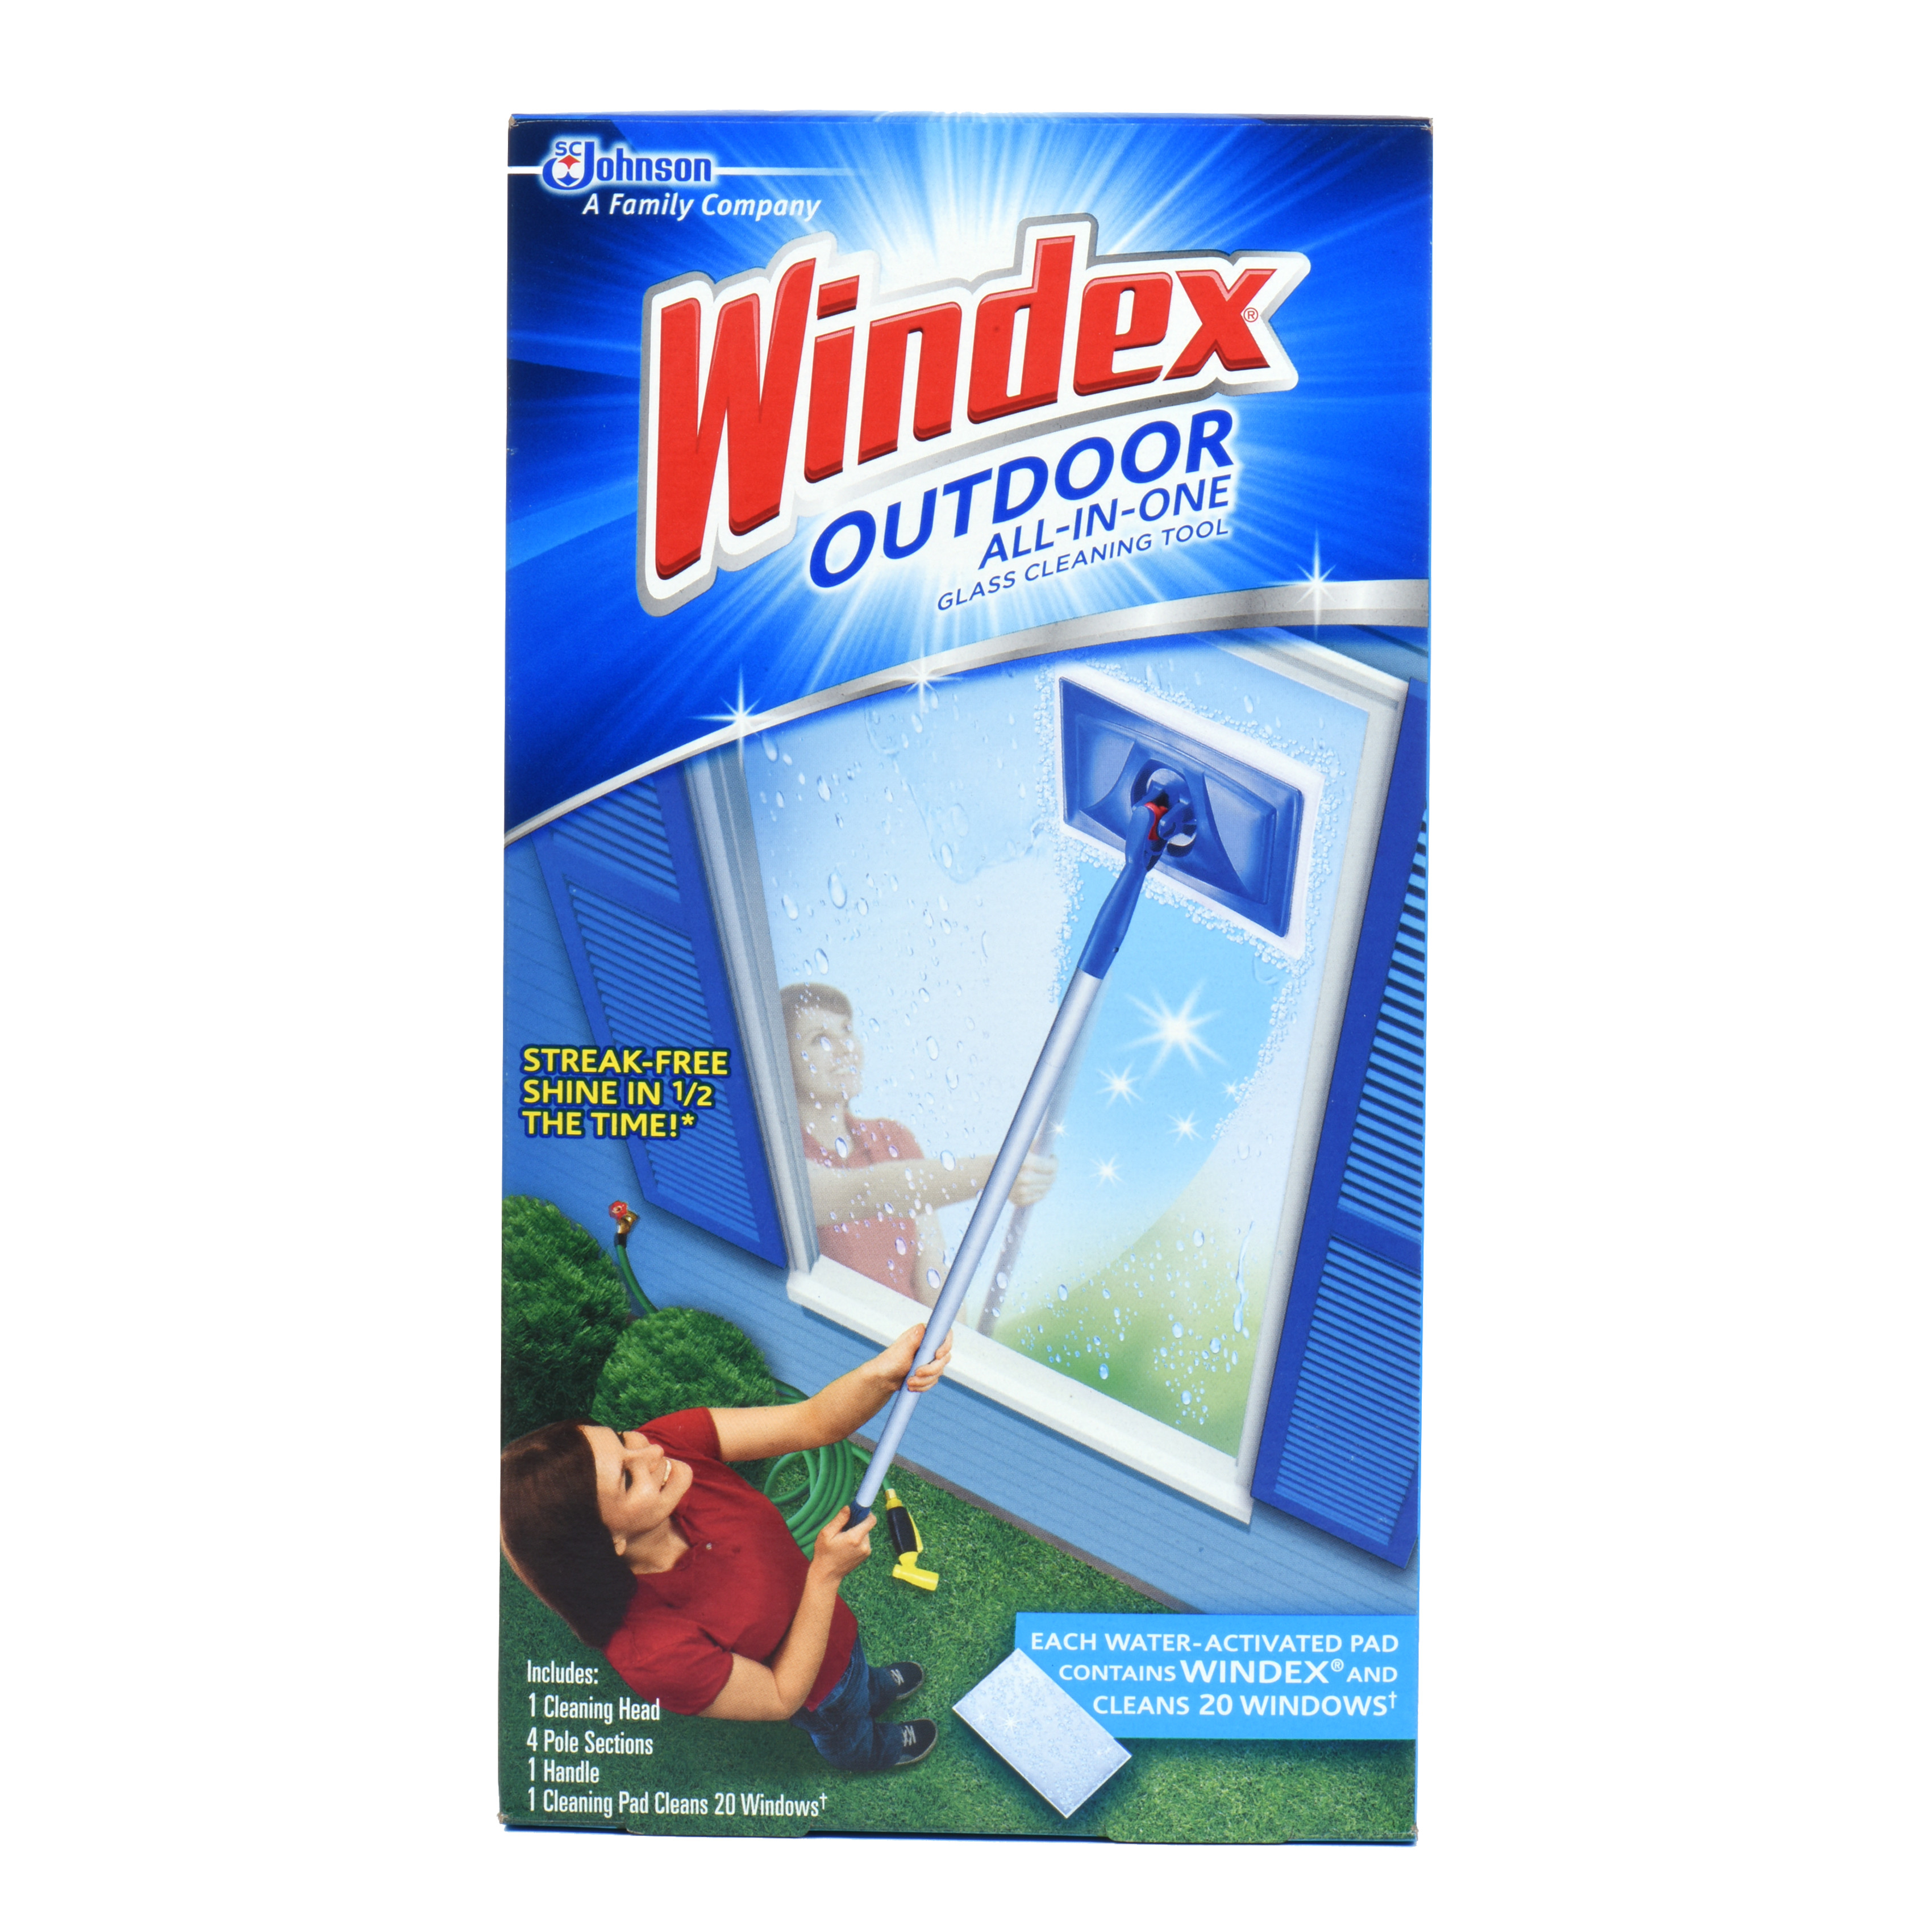 Windex Outdoor All-in One Glass Cleaning Tool Starter Kit